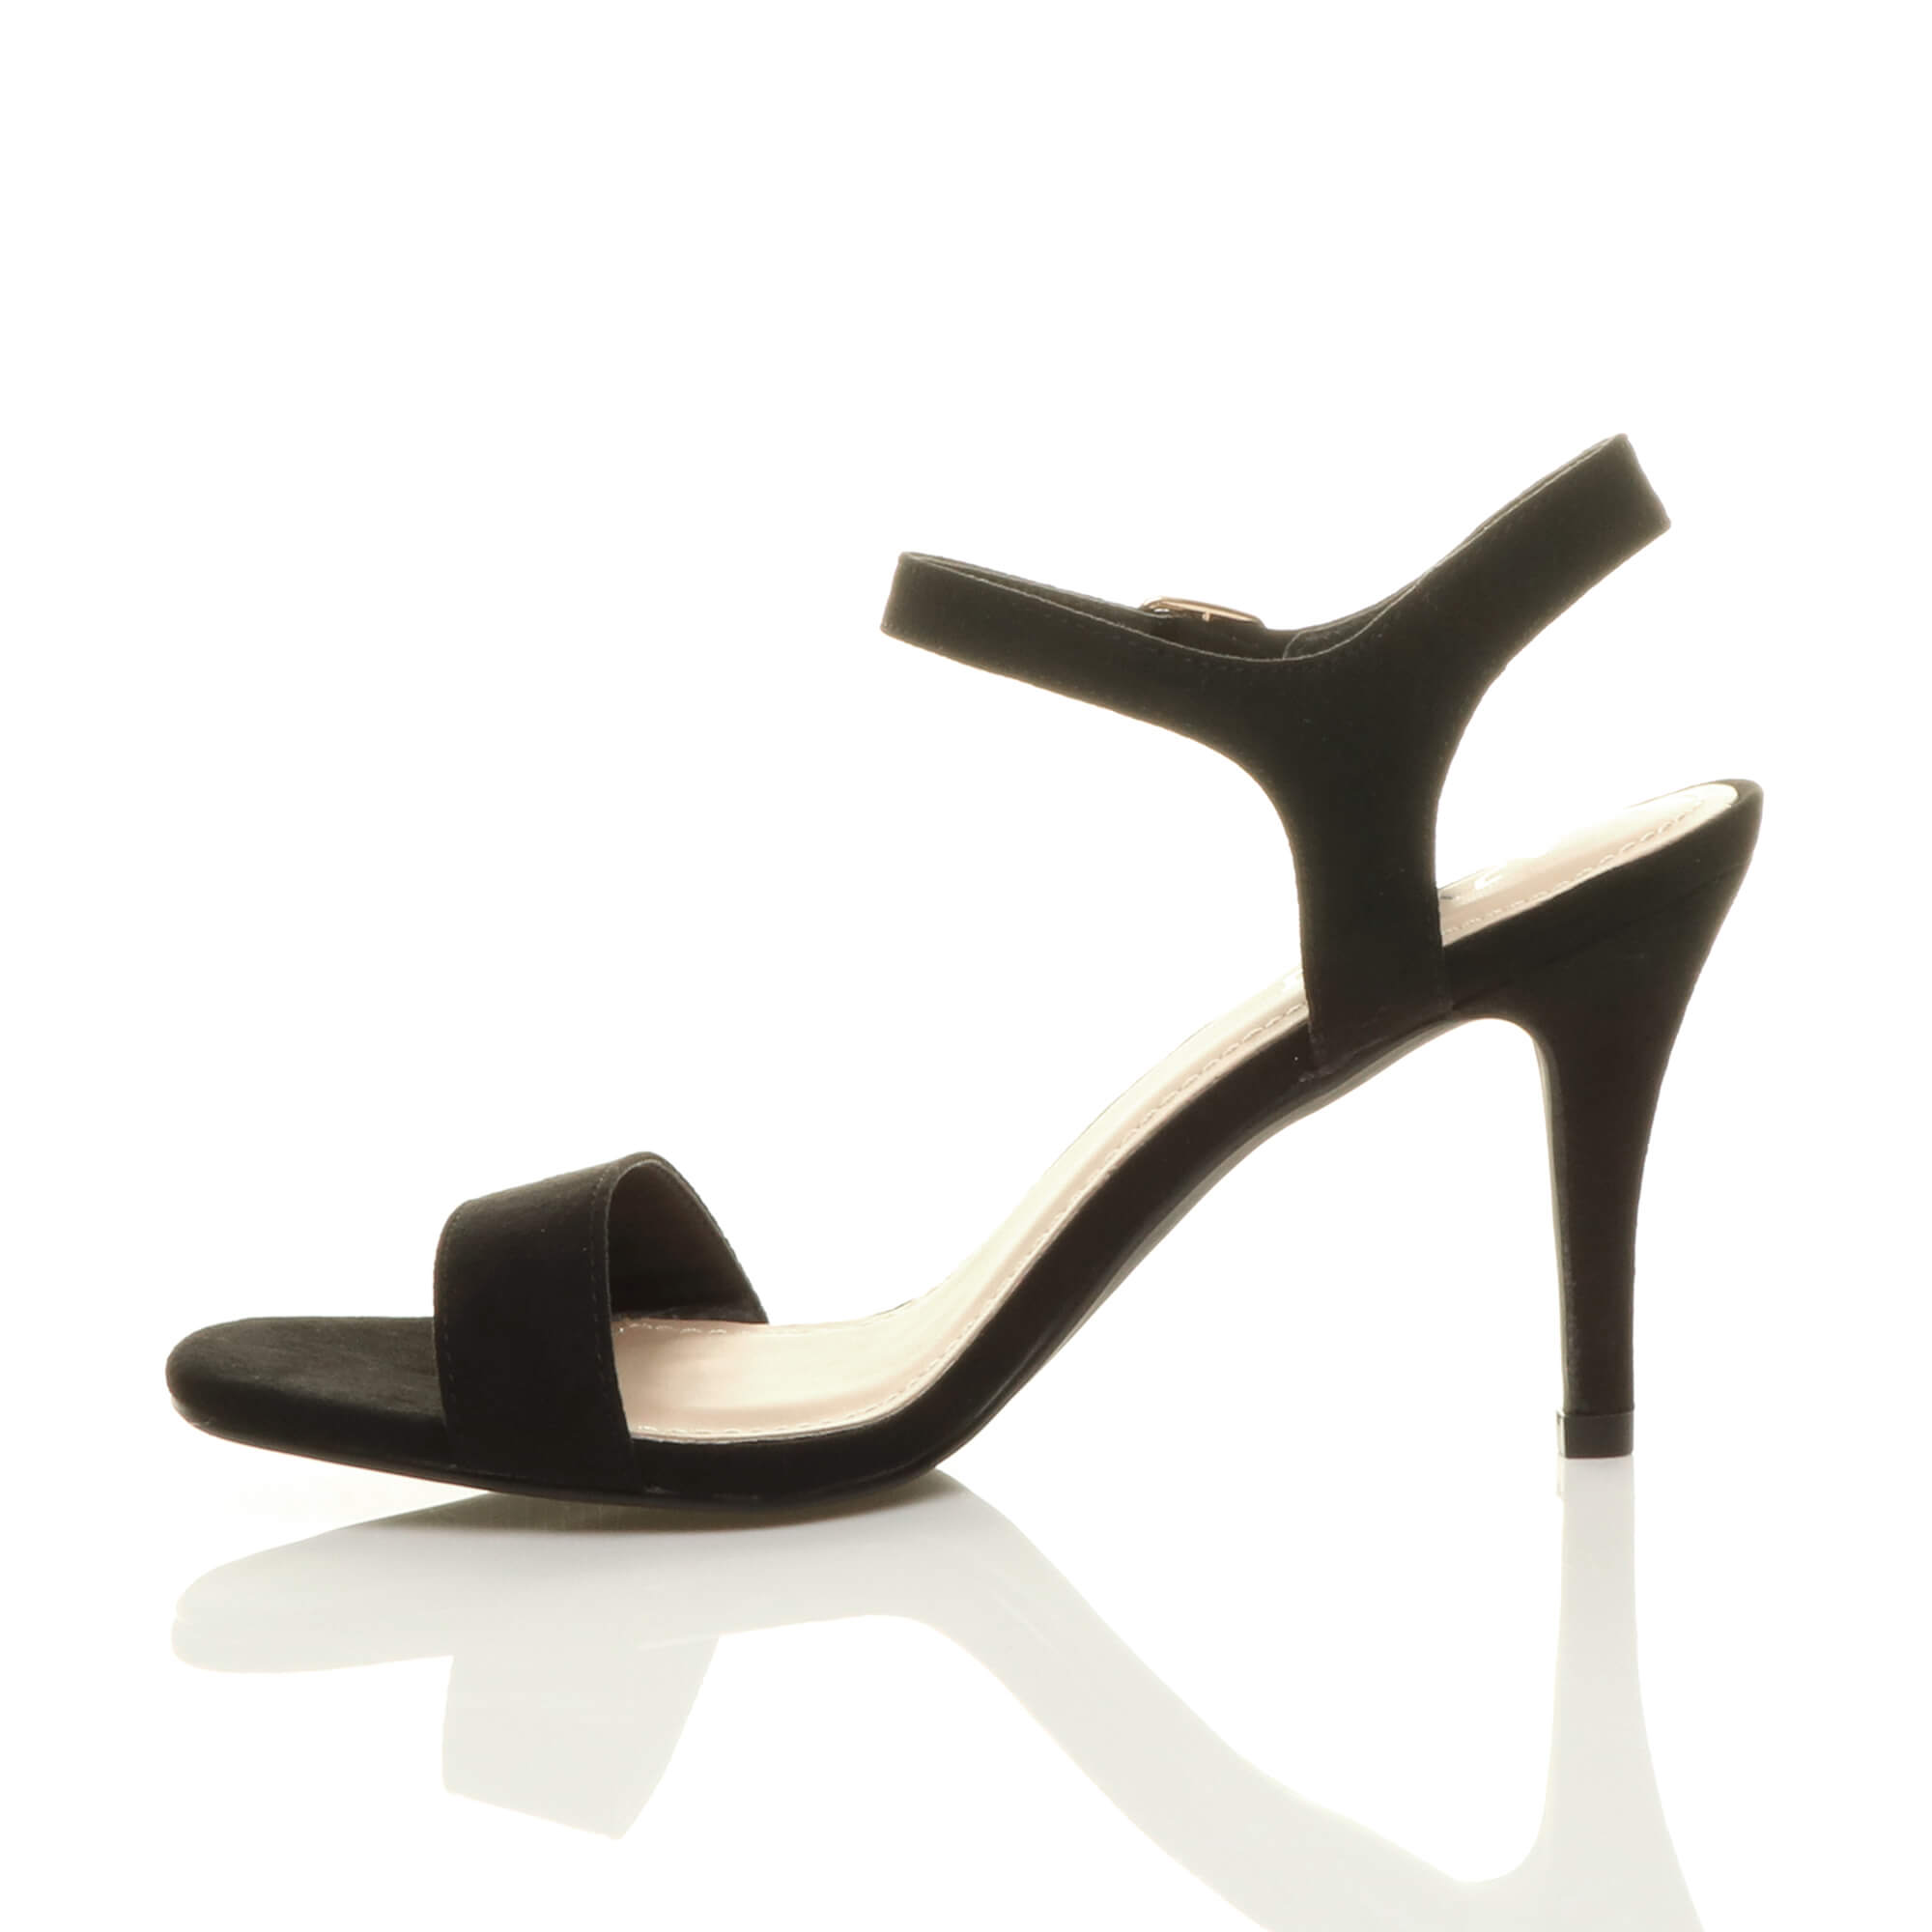 WOMENS-LADIES-HIGH-HEEL-BUCKLE-STRAPPY-BASIC-BARELY-THERE-SANDALS-SHOES-SIZE thumbnail 11